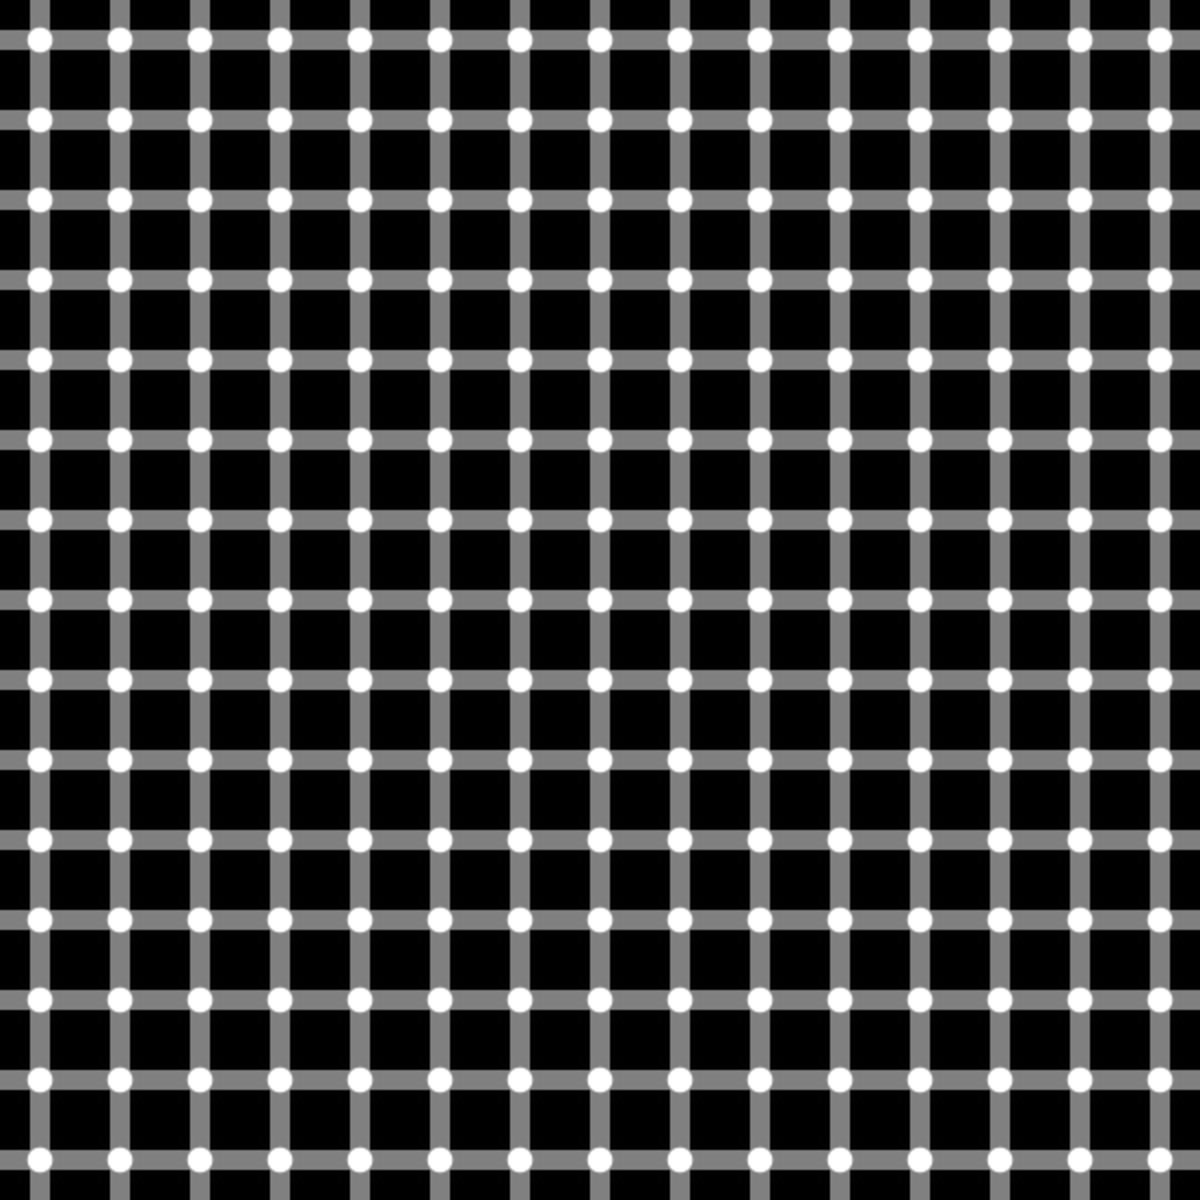 Can you count the black dots?  There are no black dots in this illusions, all the dots are white.